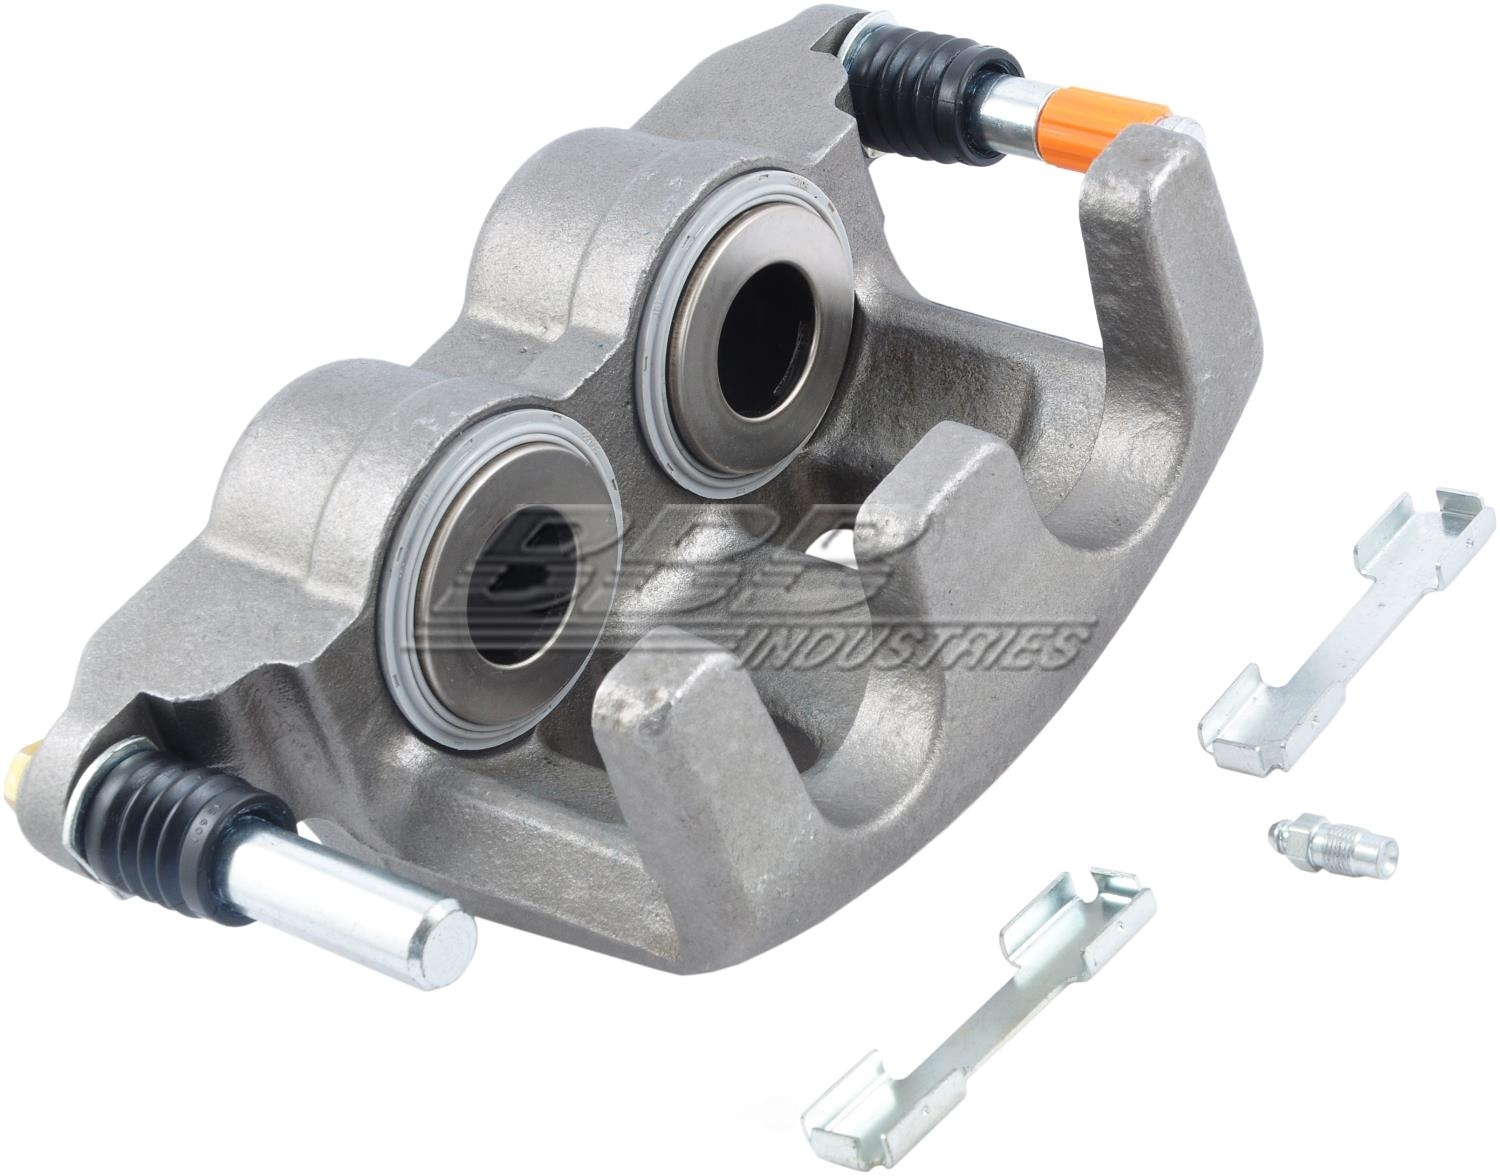 BBB INDUSTRIES - Reman Caliper w/ Installation Hardware - BBA 97-17010D